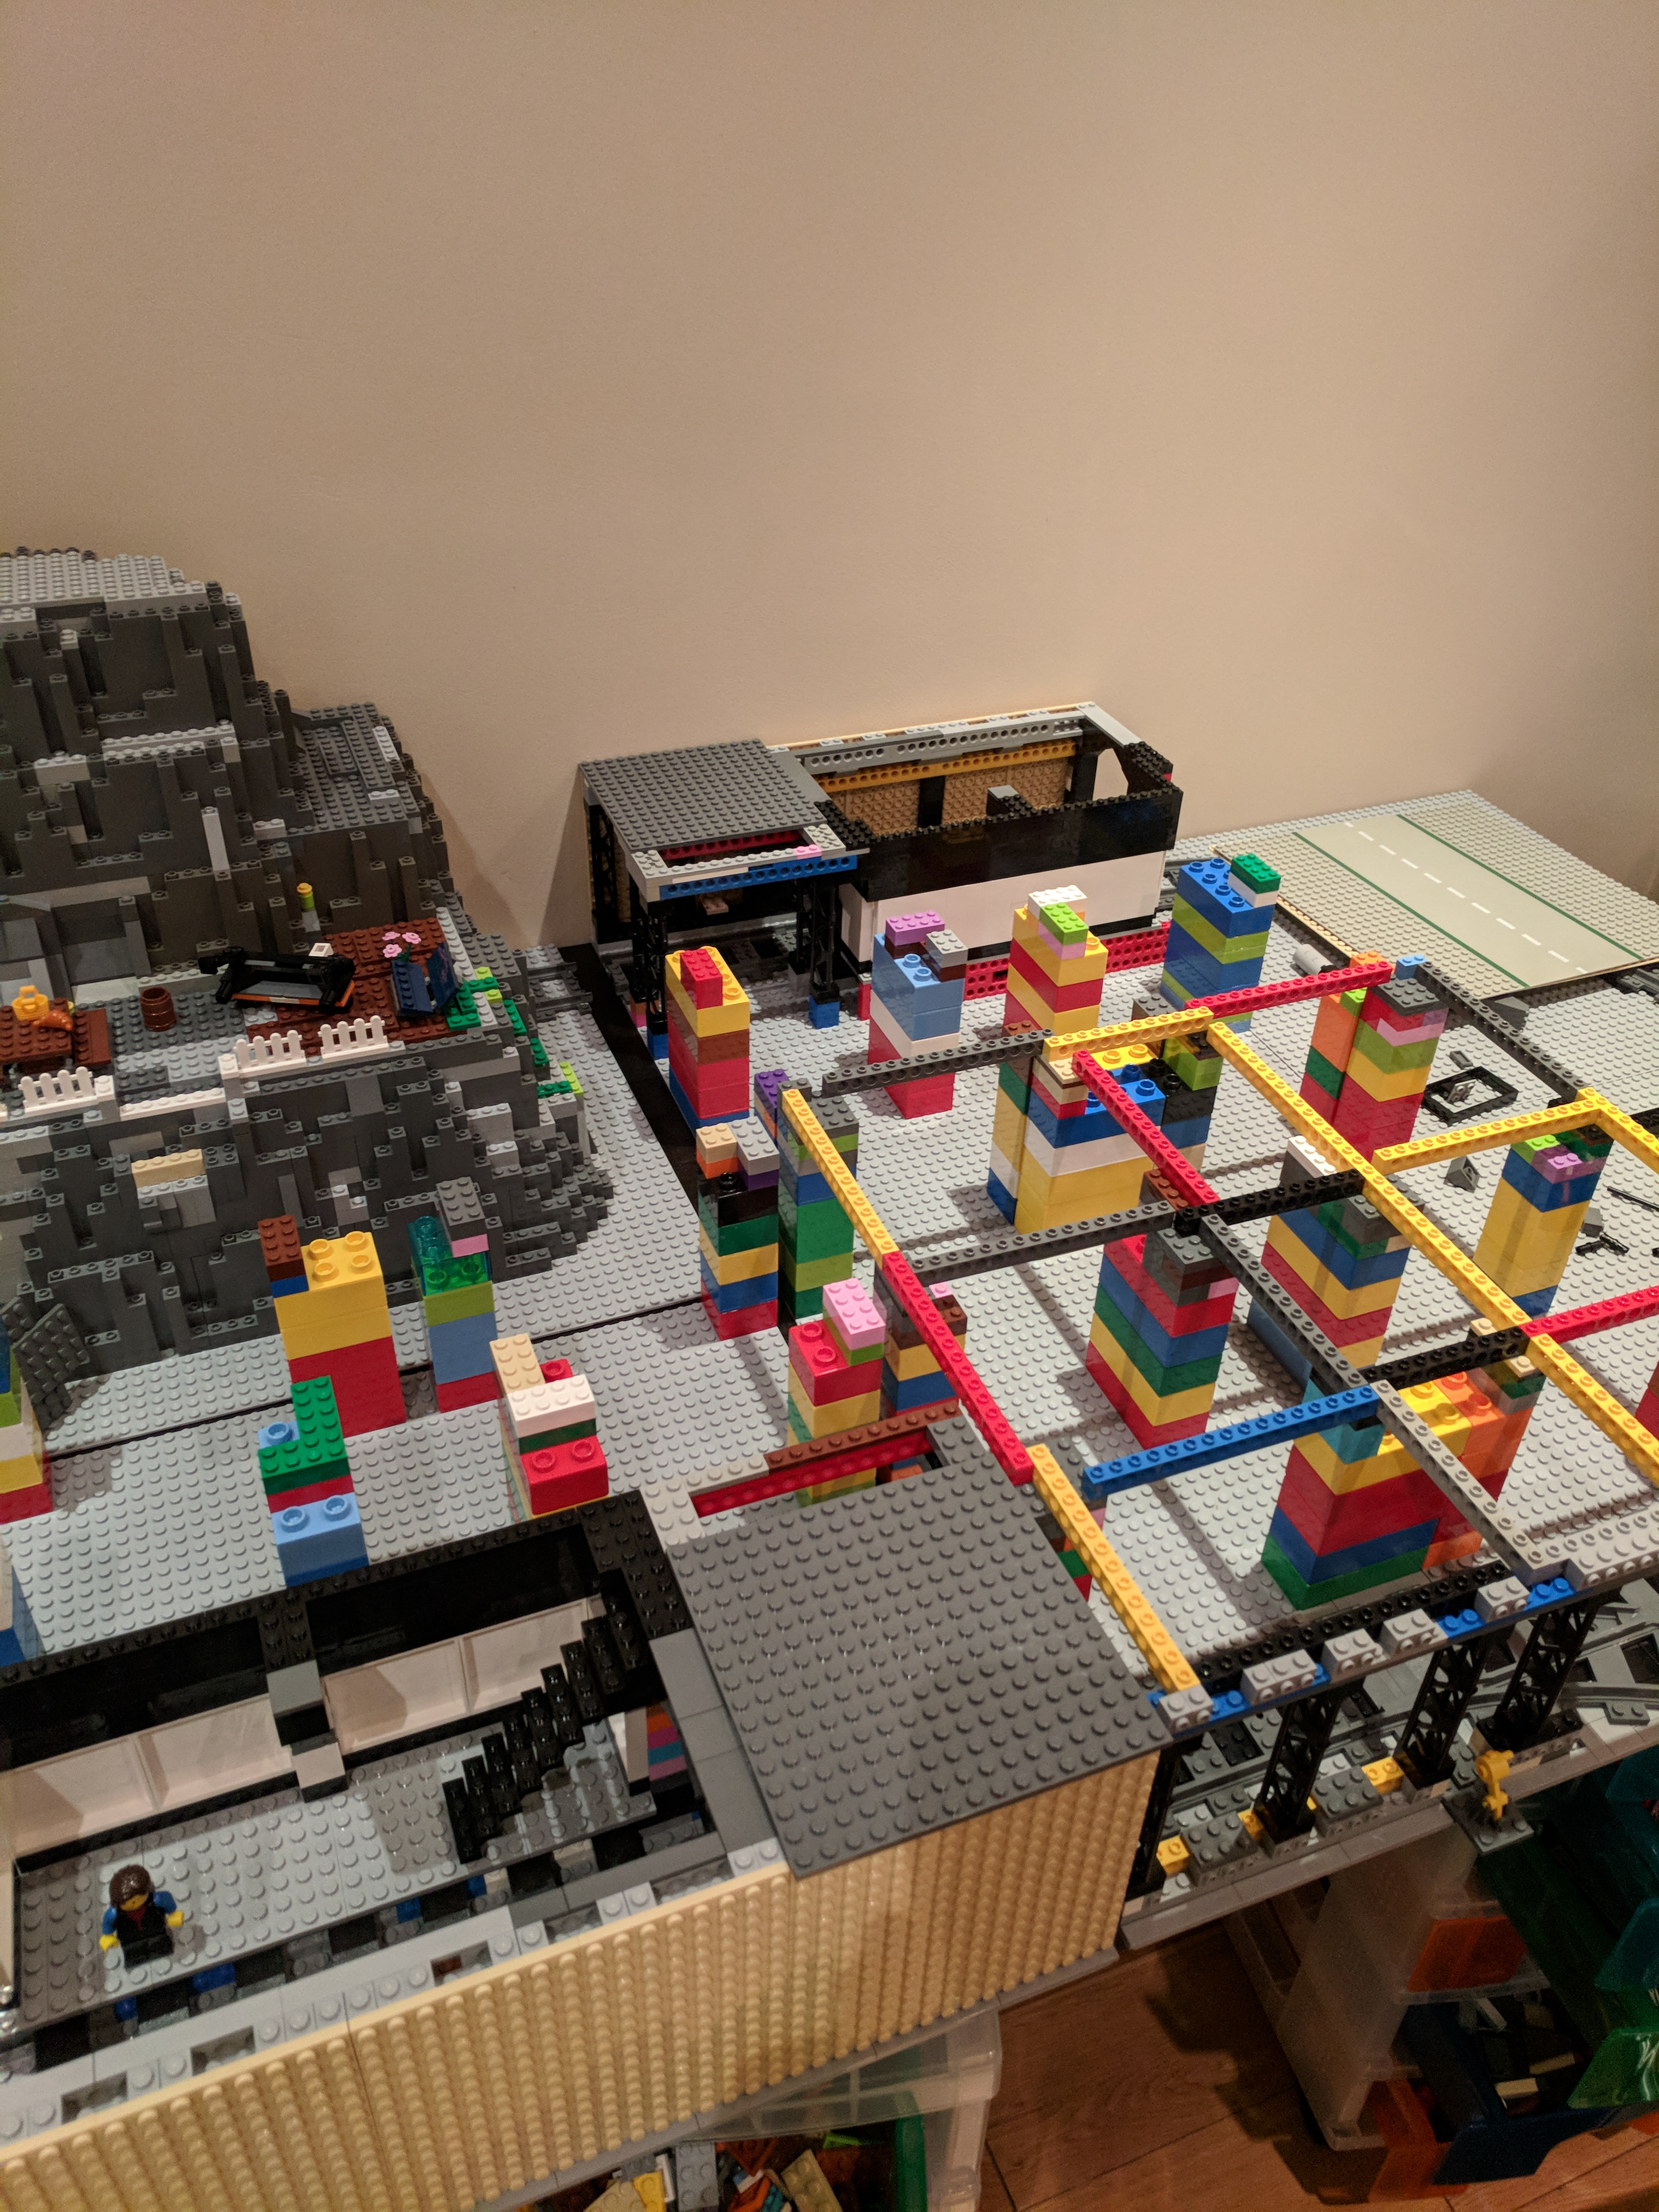 Showing some of the construction under the base plates. Using Duplo and Technic beams to make a frame.